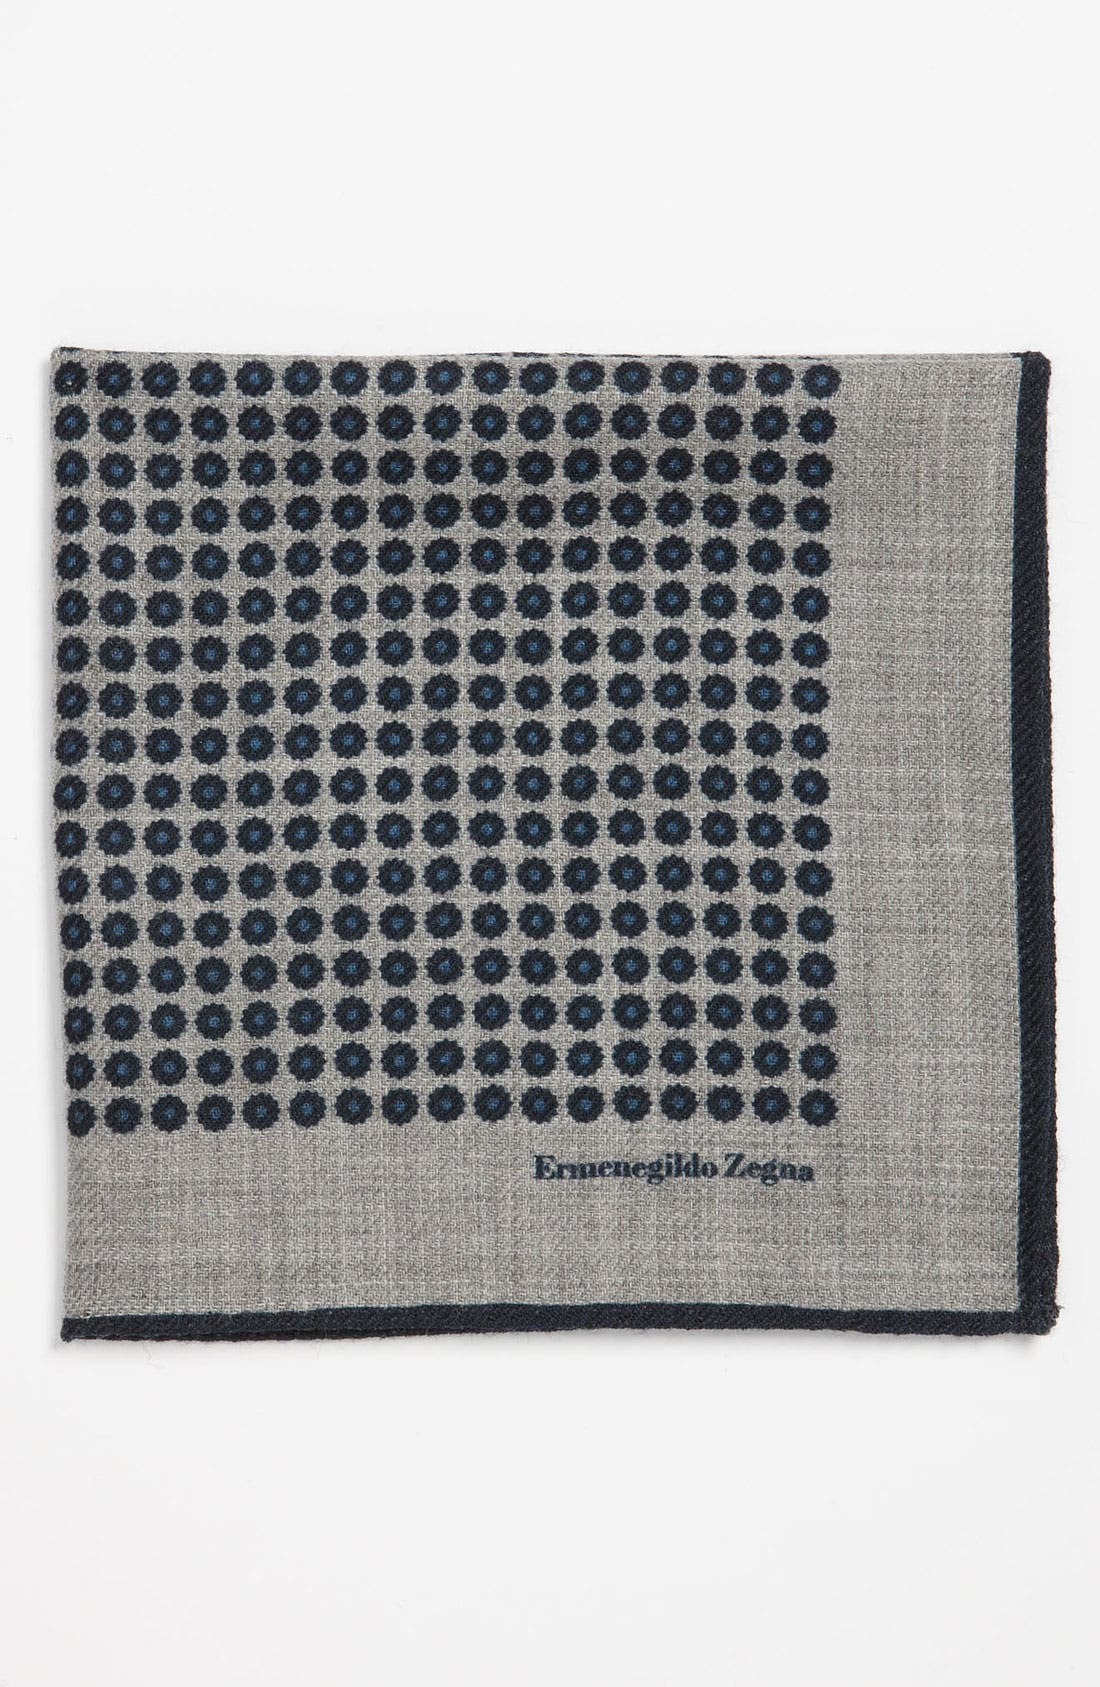 Alternate Image 1 Selected - Ermenegildo Zegna Wool Pocket Square